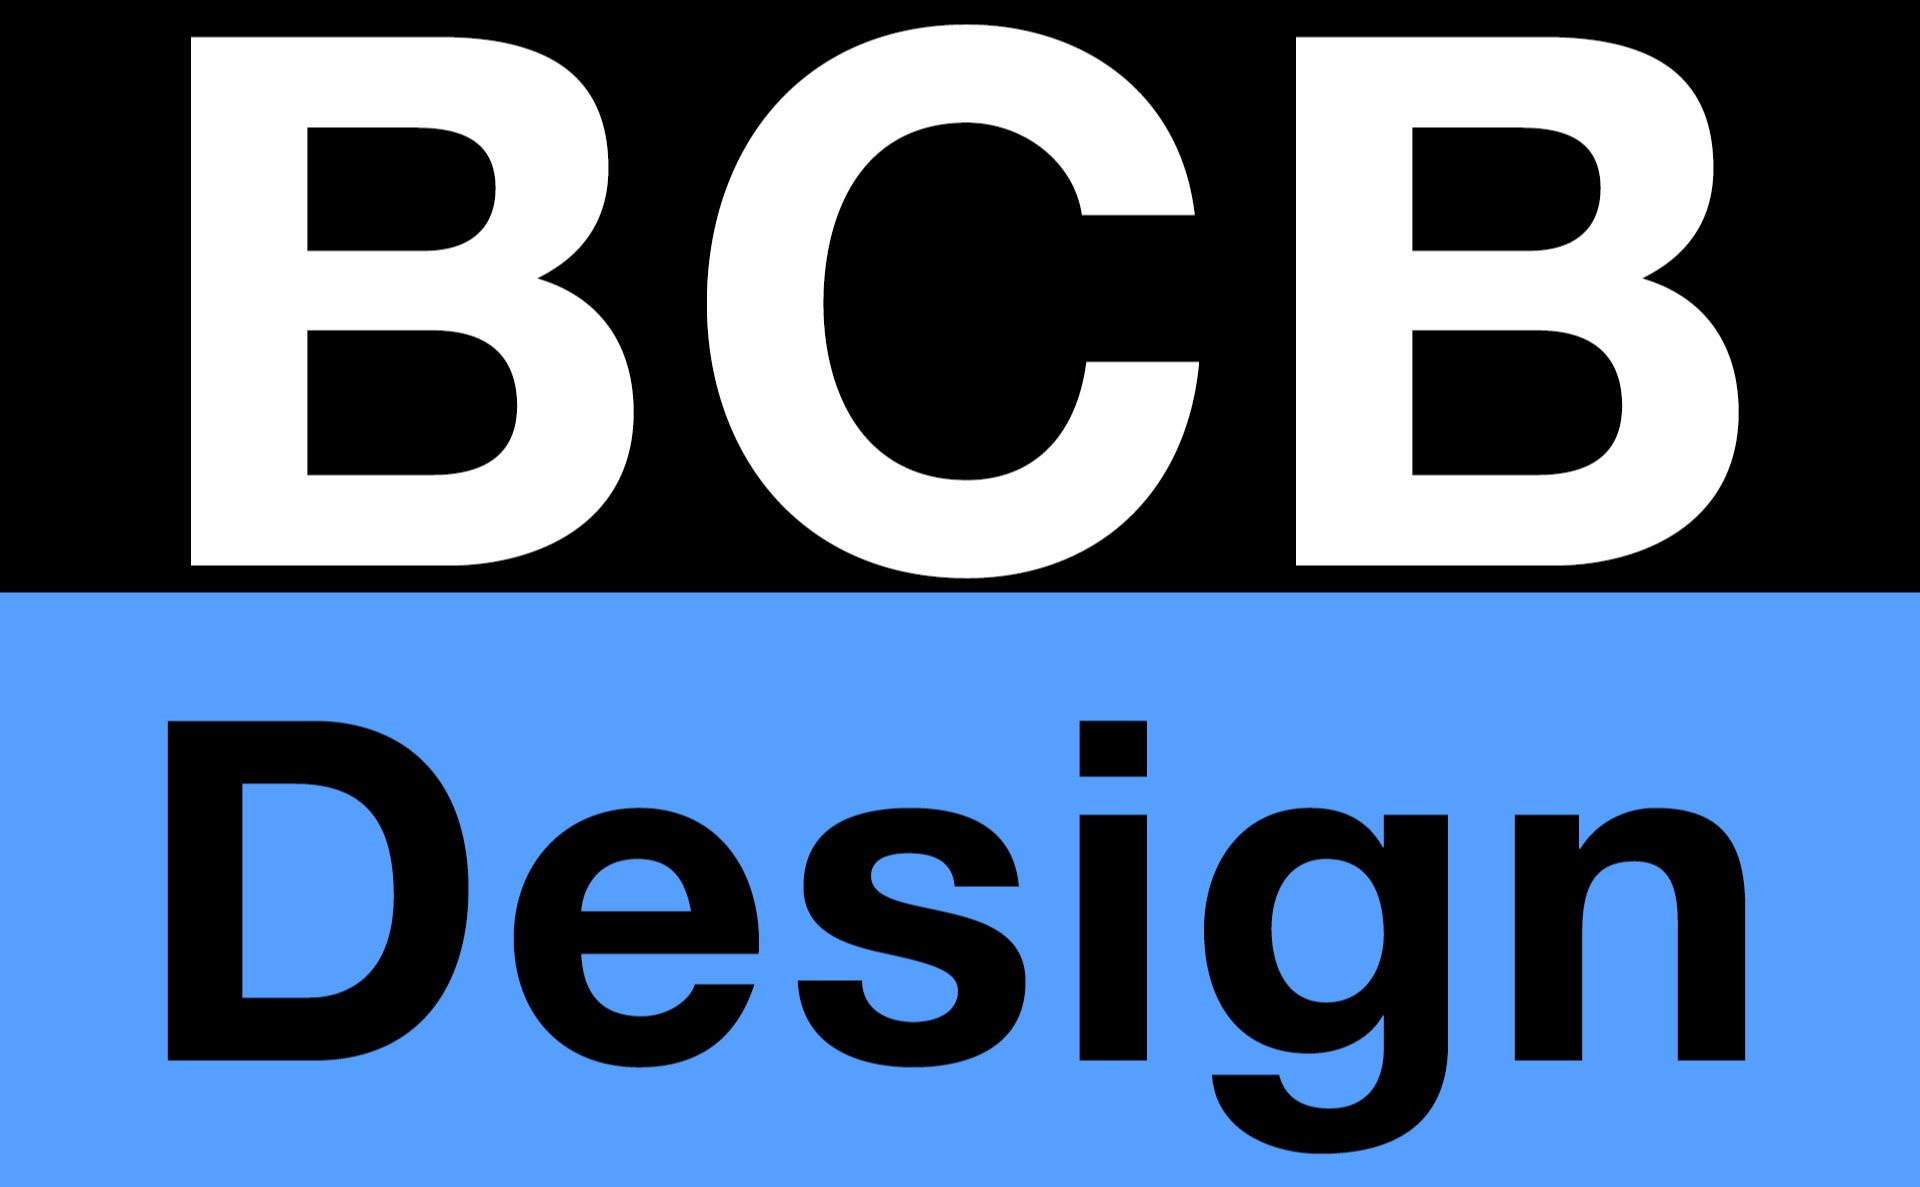 The Logo of BCB Design (Brad C. Bleich)